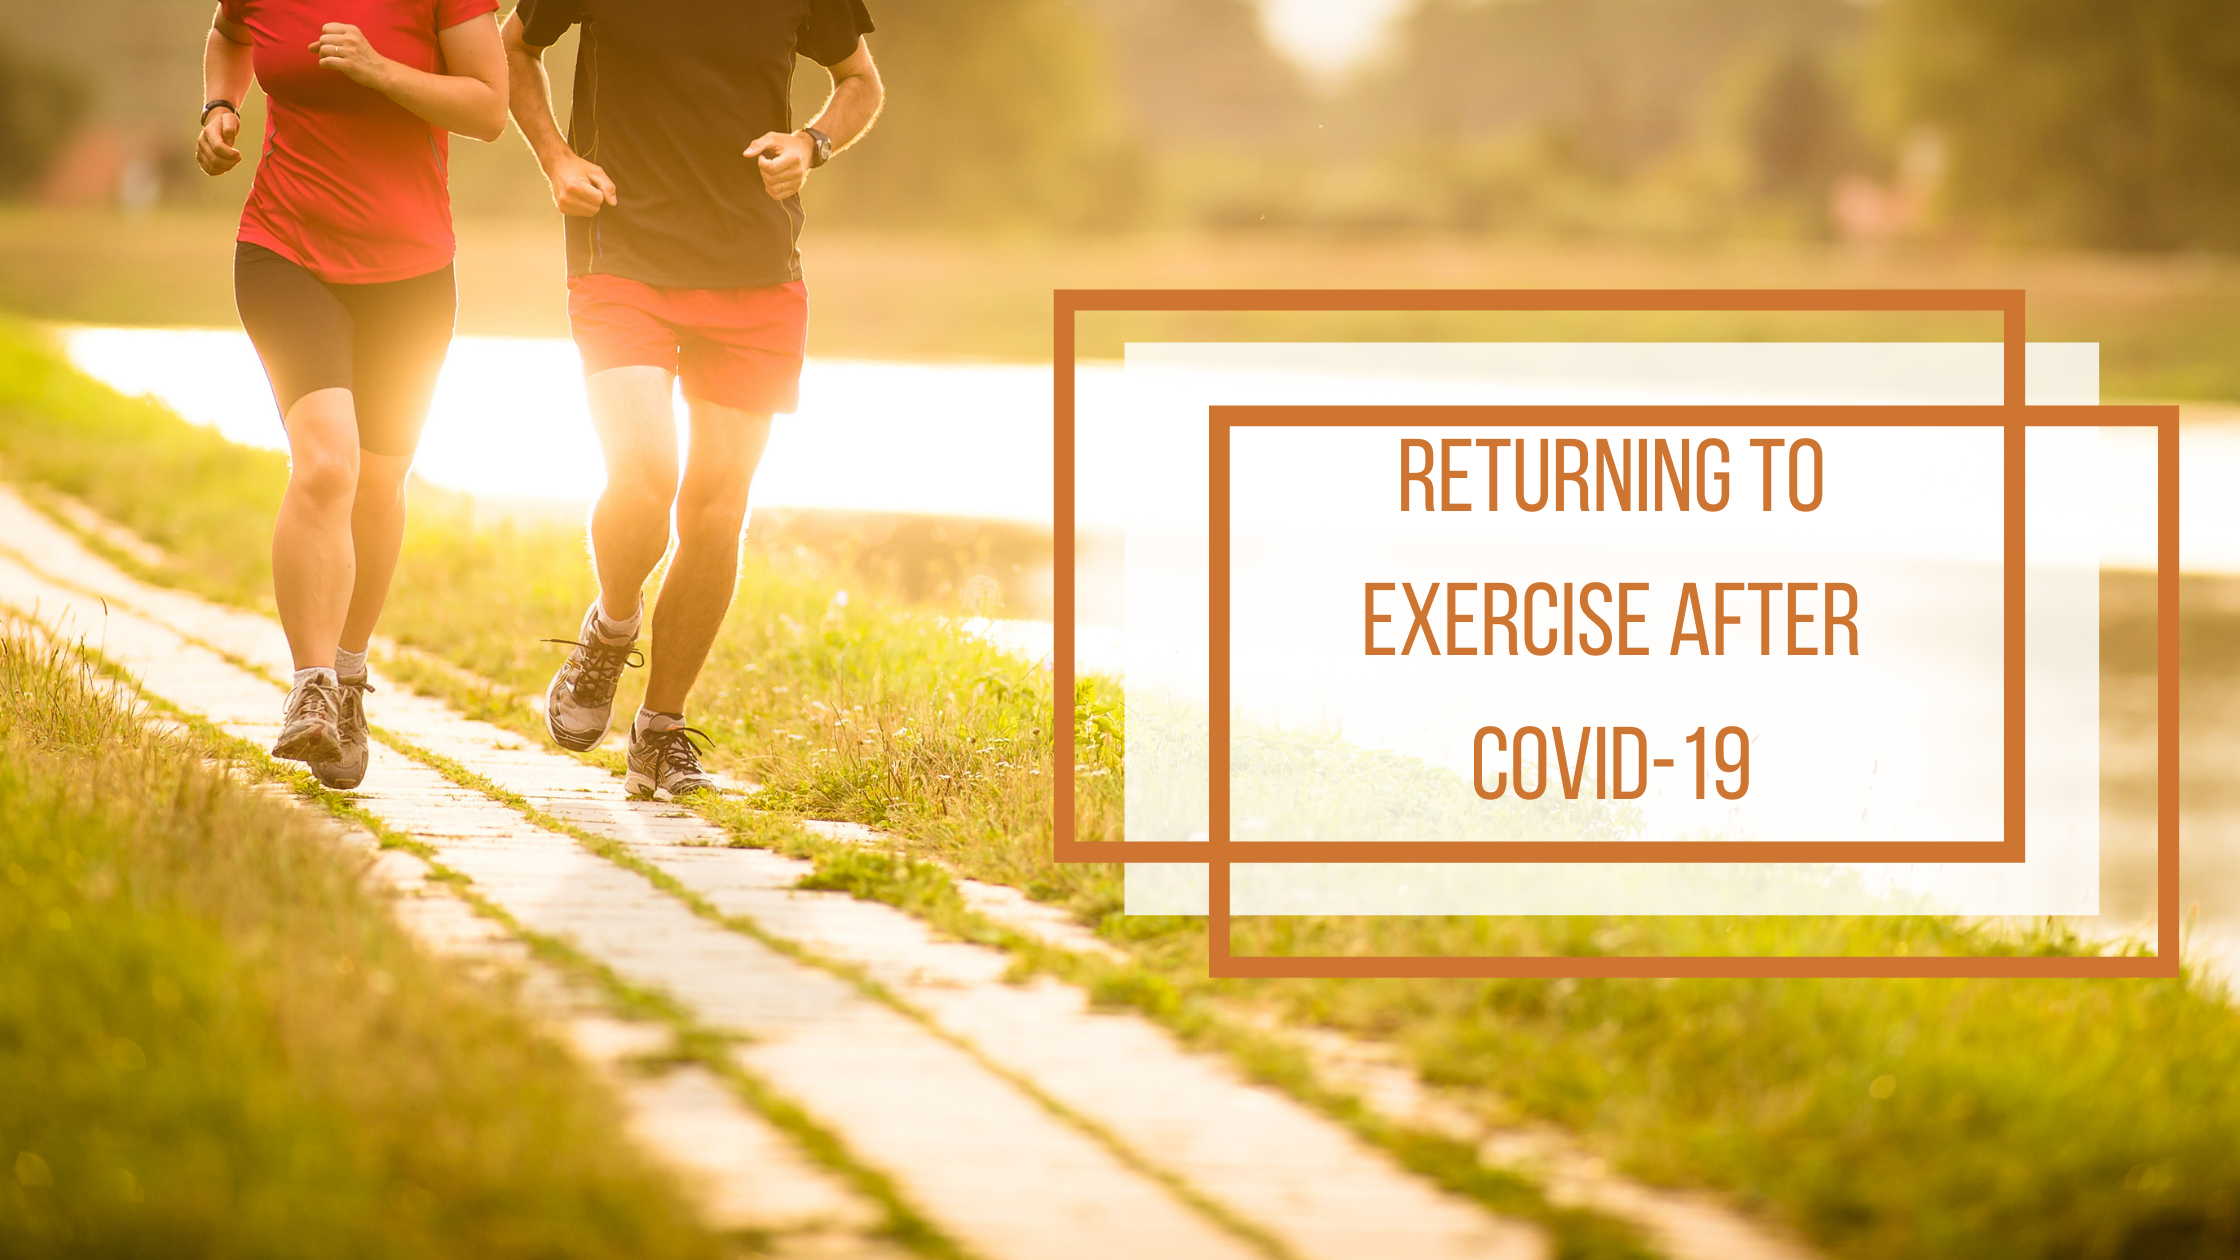 Returning to Exercise After COVID-19